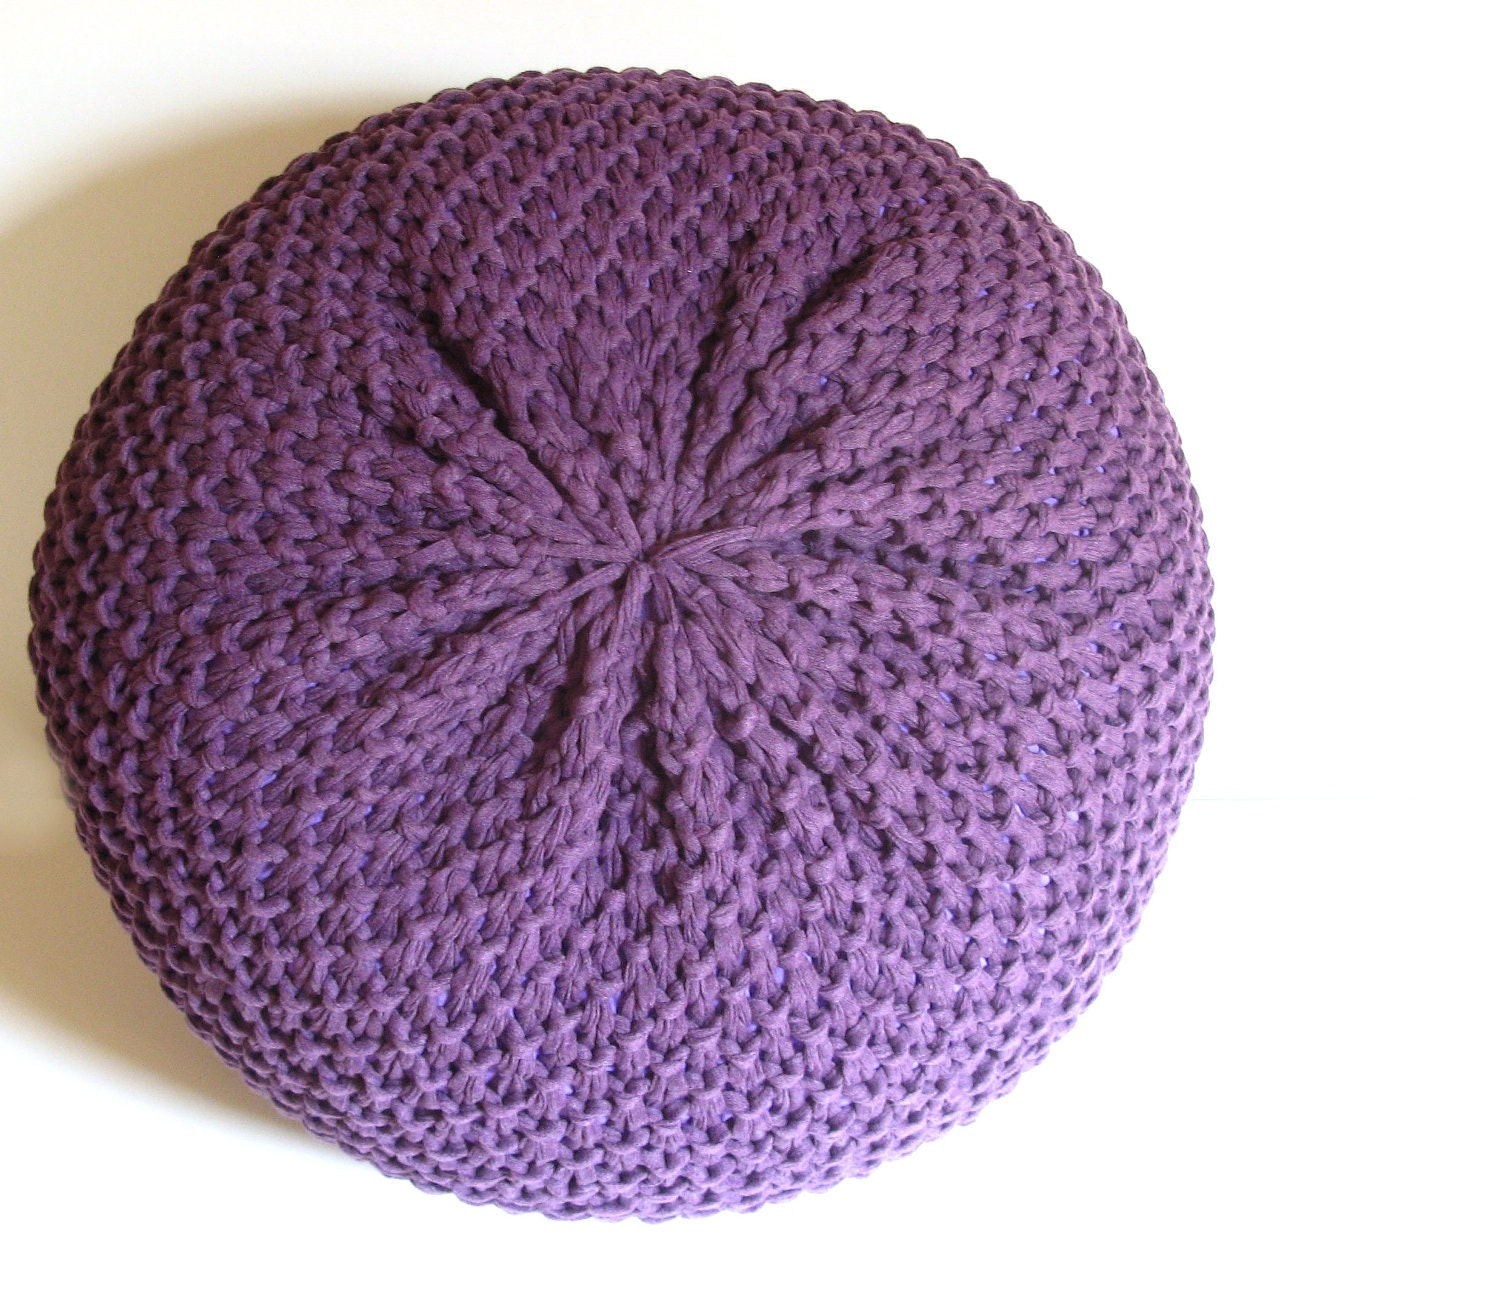 Knitted Pouf ottoman foot stool floor pillow